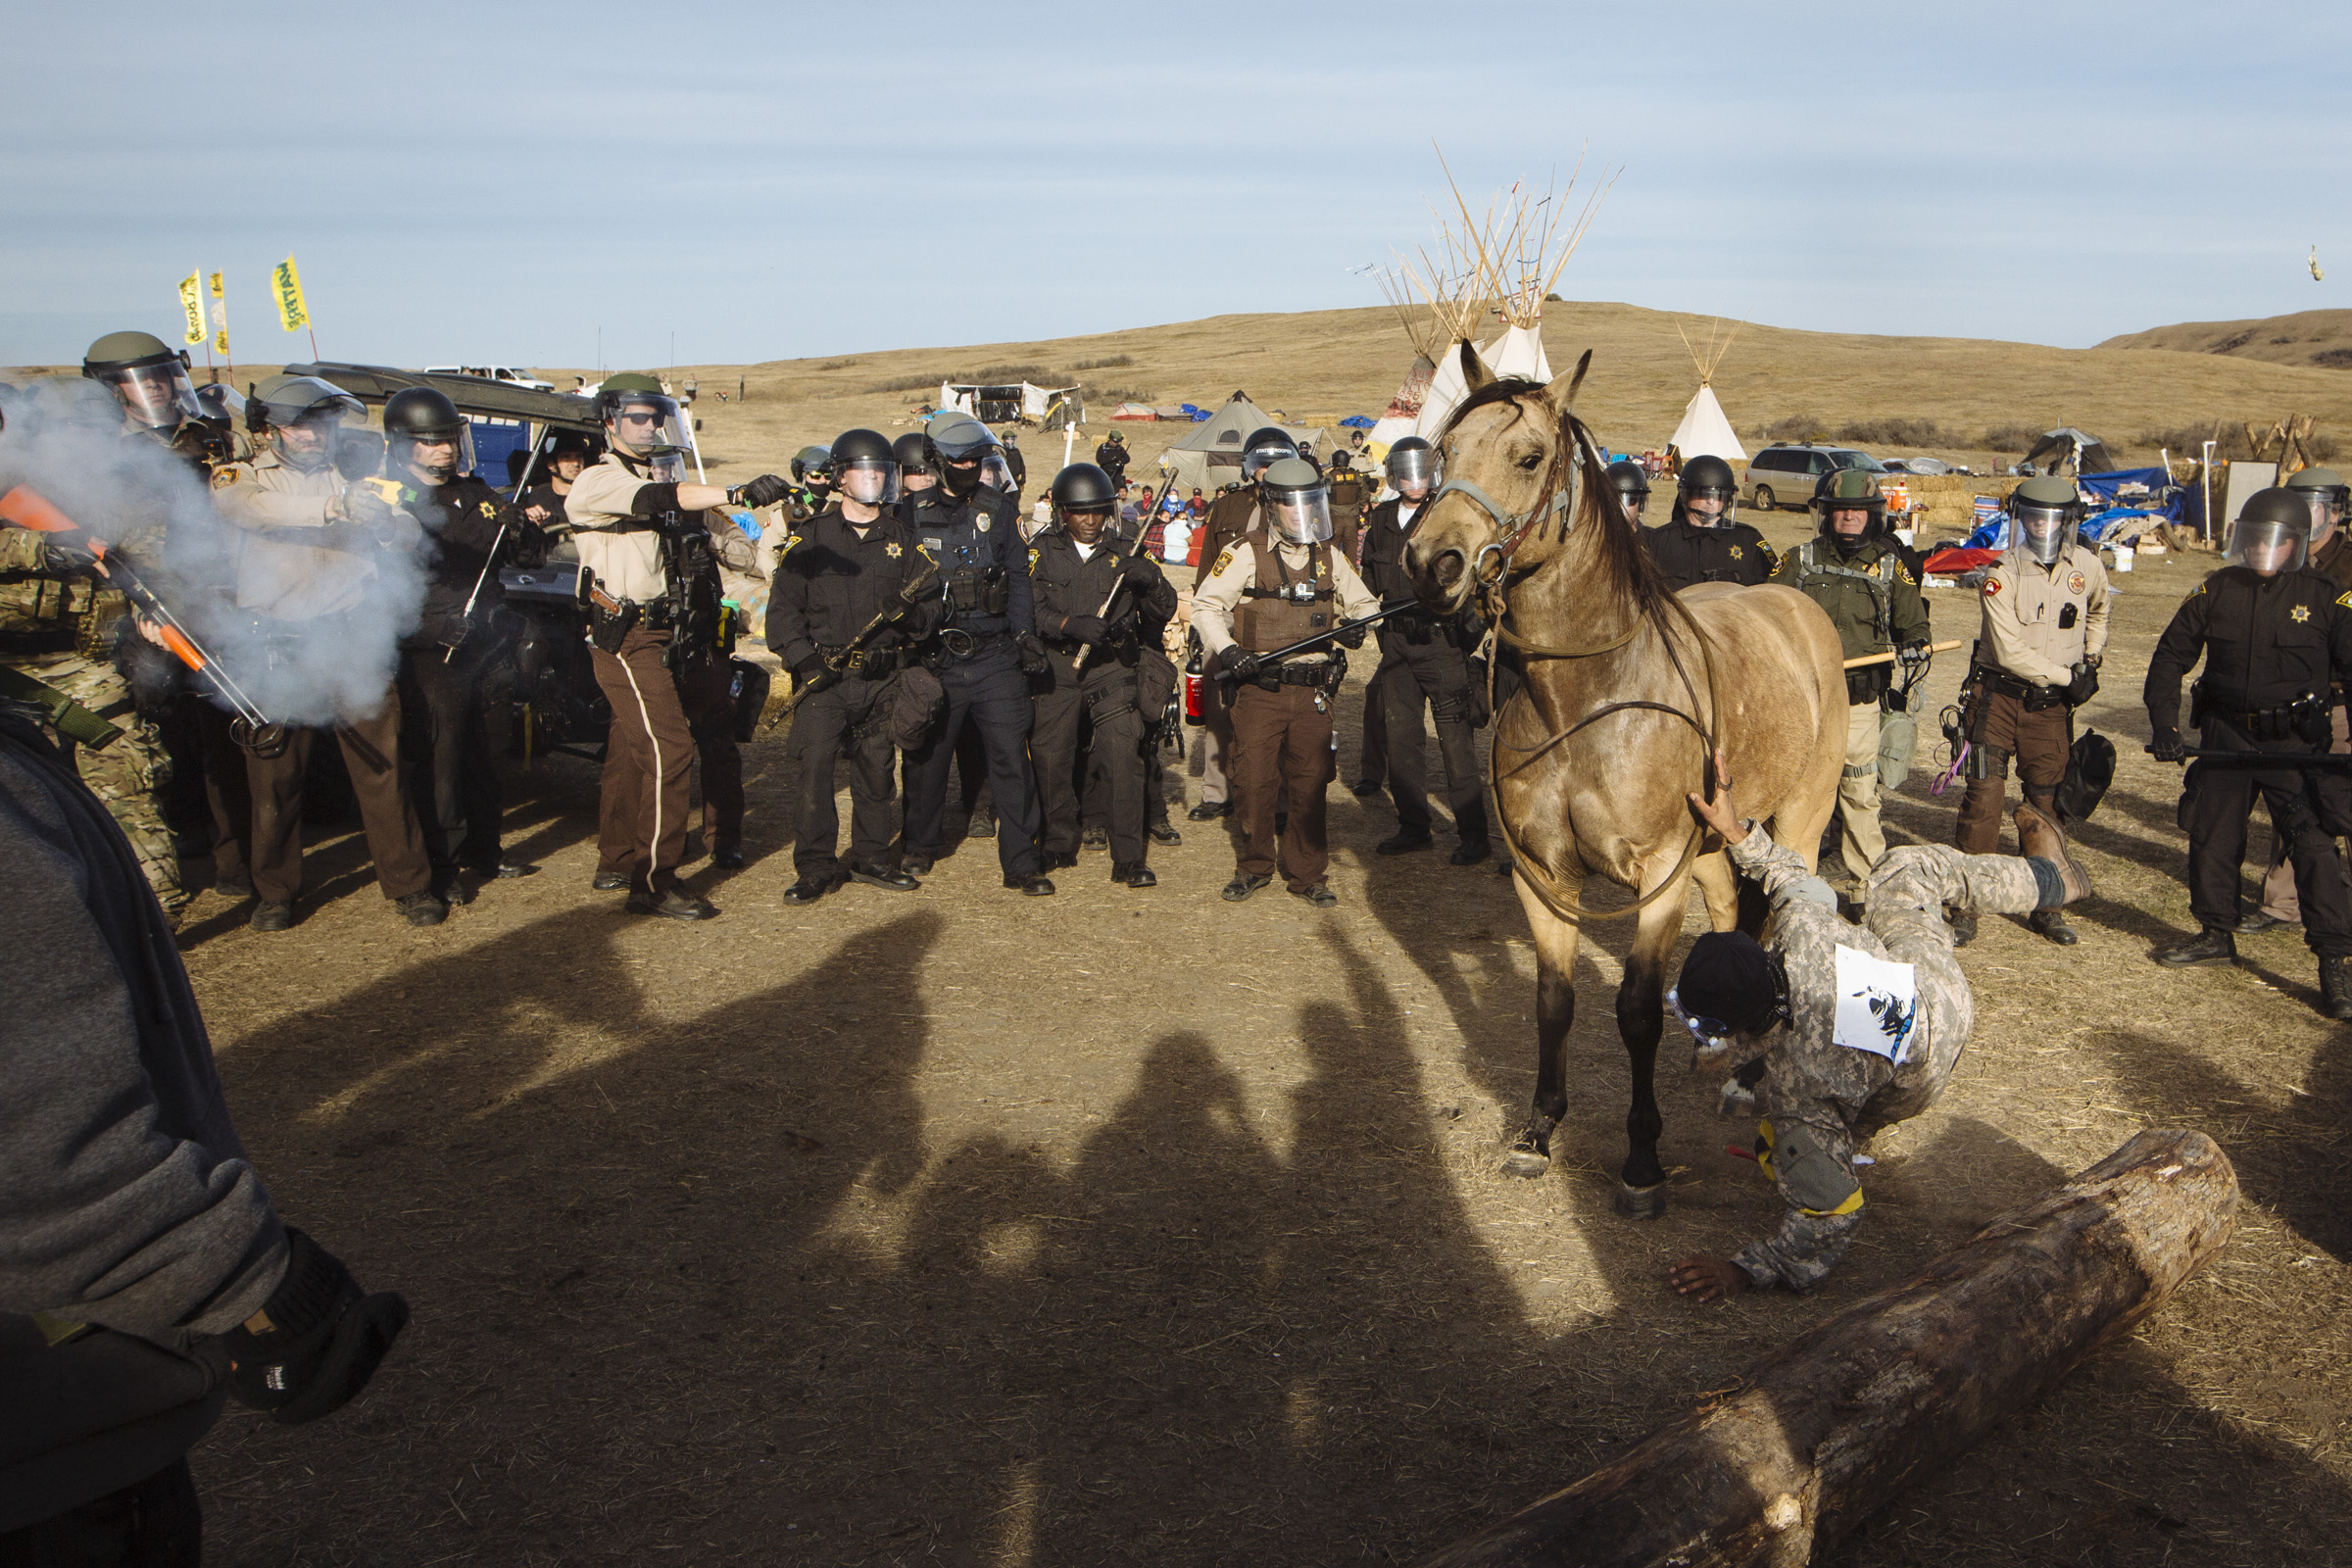 """Smokey White, 18, is shot with a sponge grenade and tazed off his horse as riot police move through a camp set up by protestors in the path of the Dakota Access Pipeline near Standing Rock, North Dakota, on Thursday, Oct. 27, 2016. """"This is modern war,"""" said Smokey. """"The only difference is we don't have assault riffles – our weapon is our prayer."""" (Photo by Angus Mordant/GroundTruth)"""